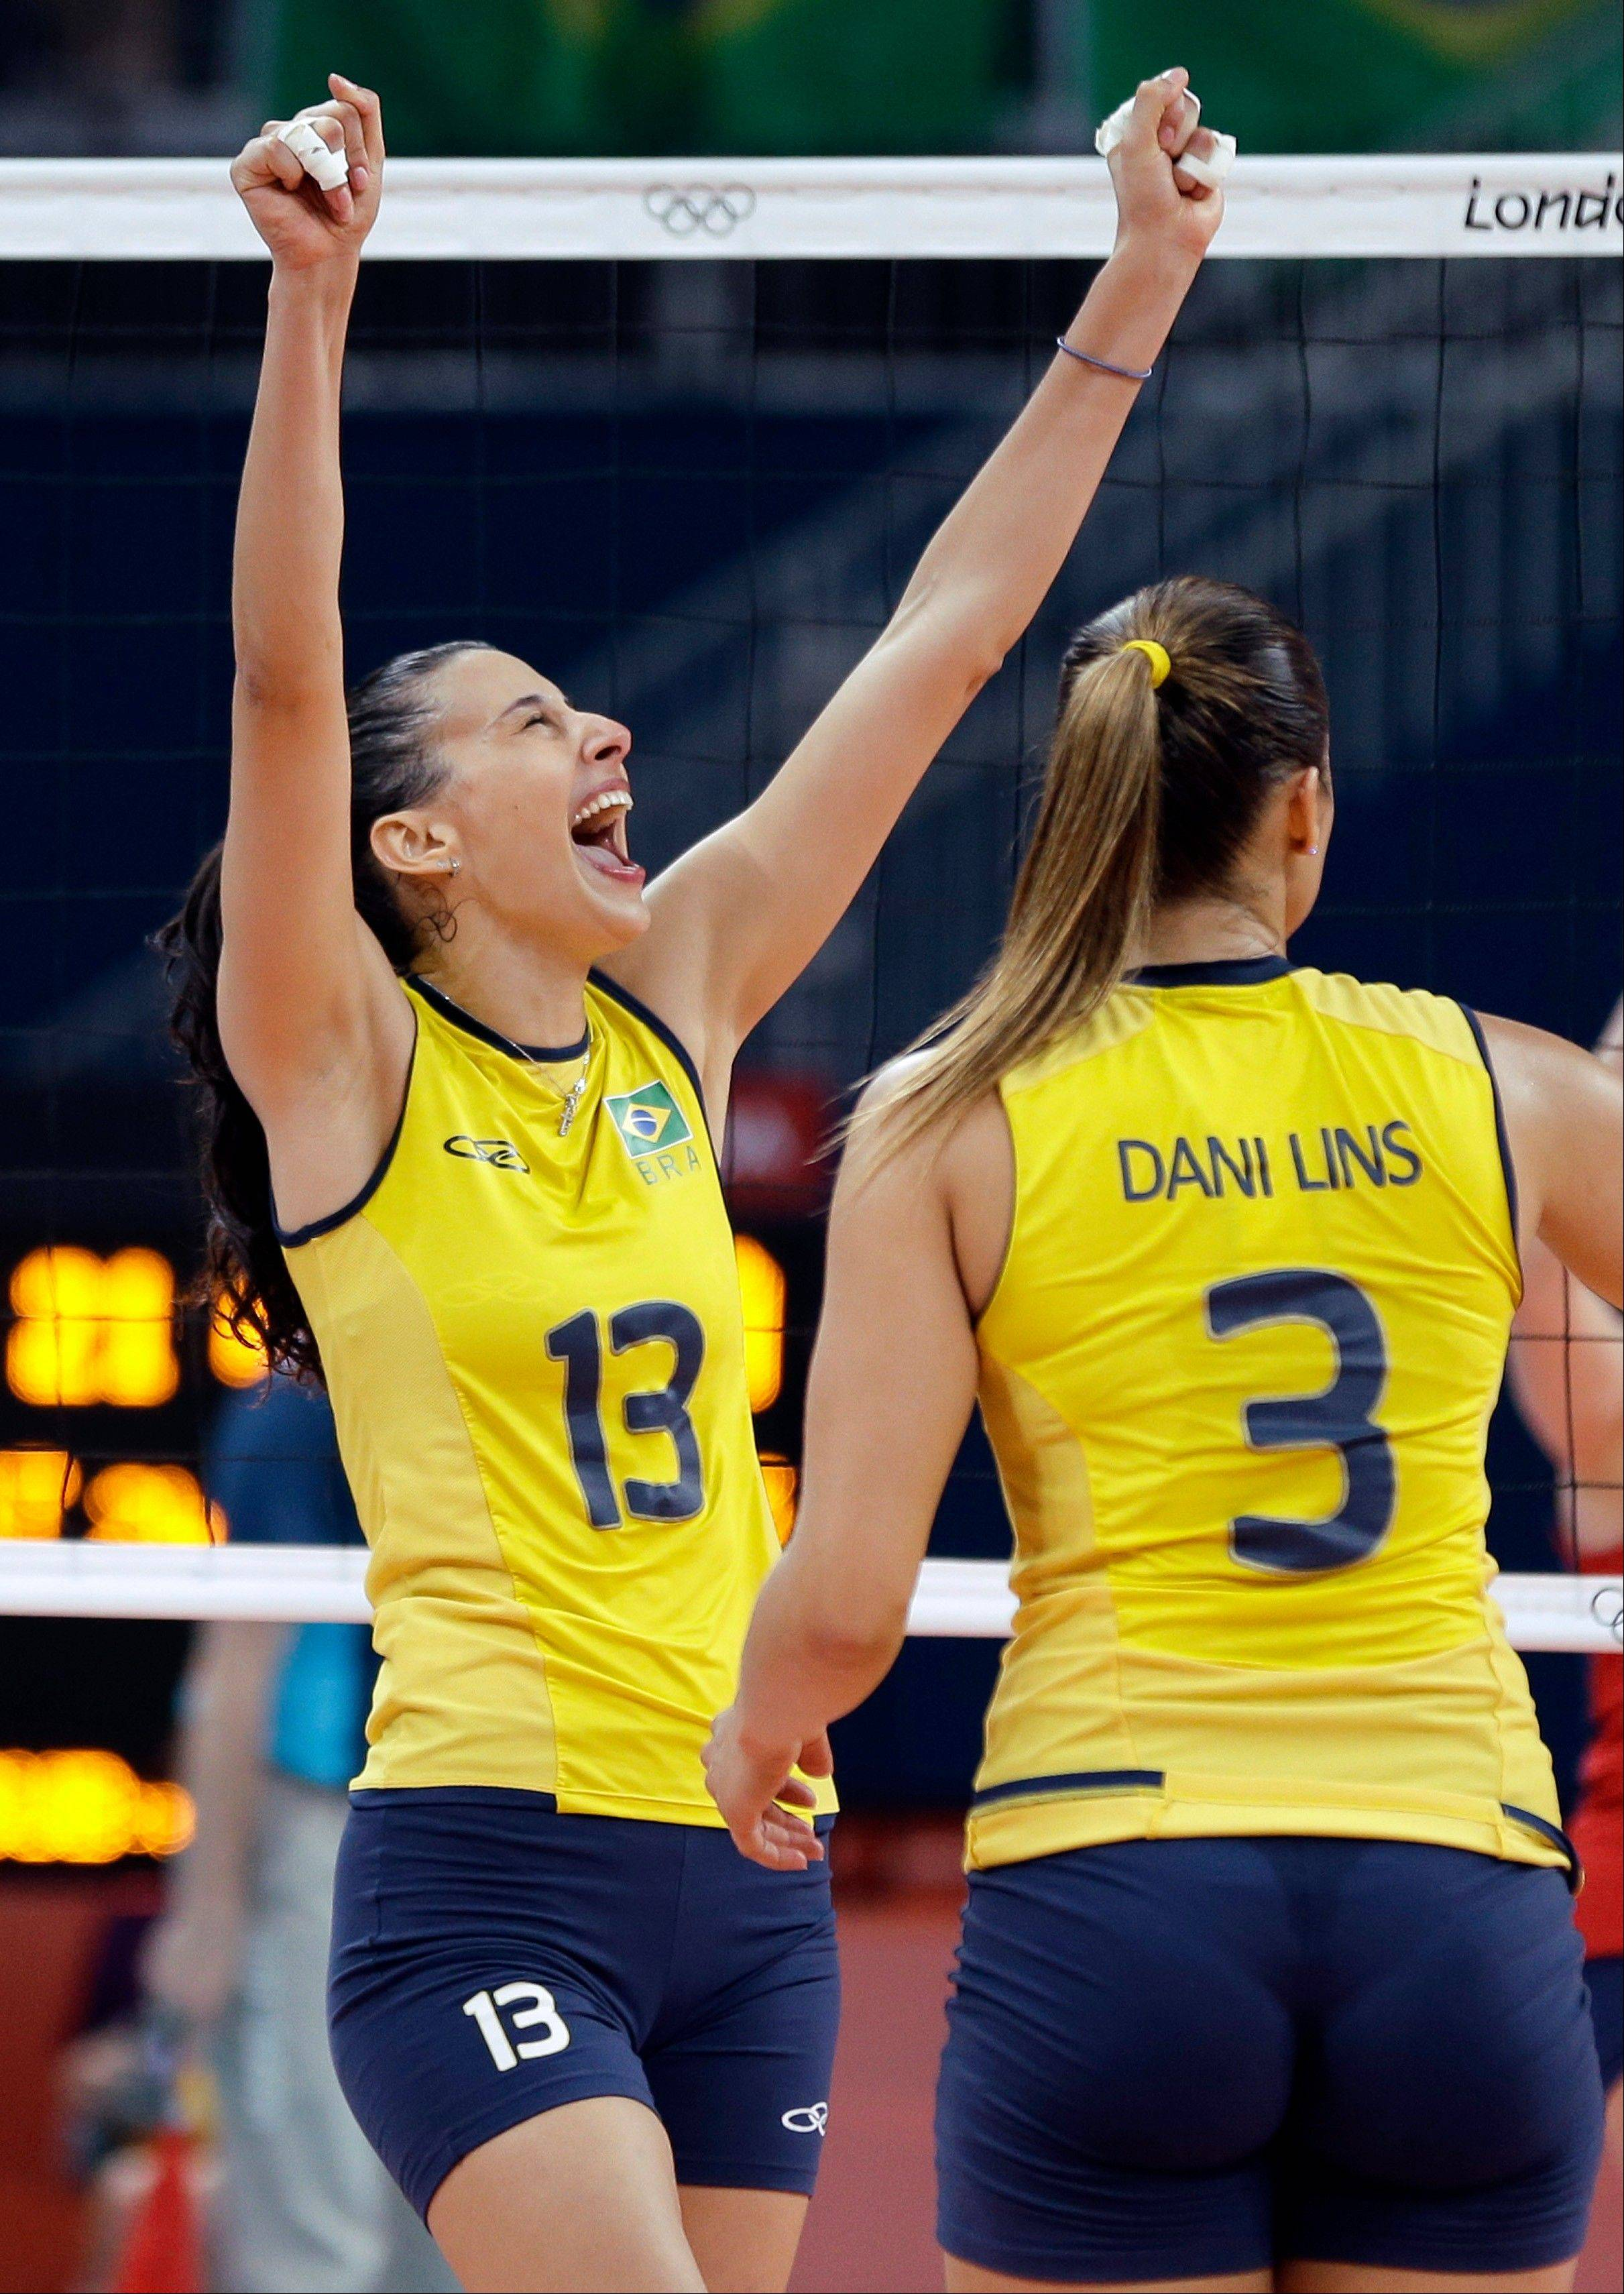 Brazil's Sheilla Castro (13) and Danielle Lins (3) react to a point against the USA during a women's volleyball gold medal match at the 2012 Summer Olympics Saturday, Aug. 11, 2012, in London.